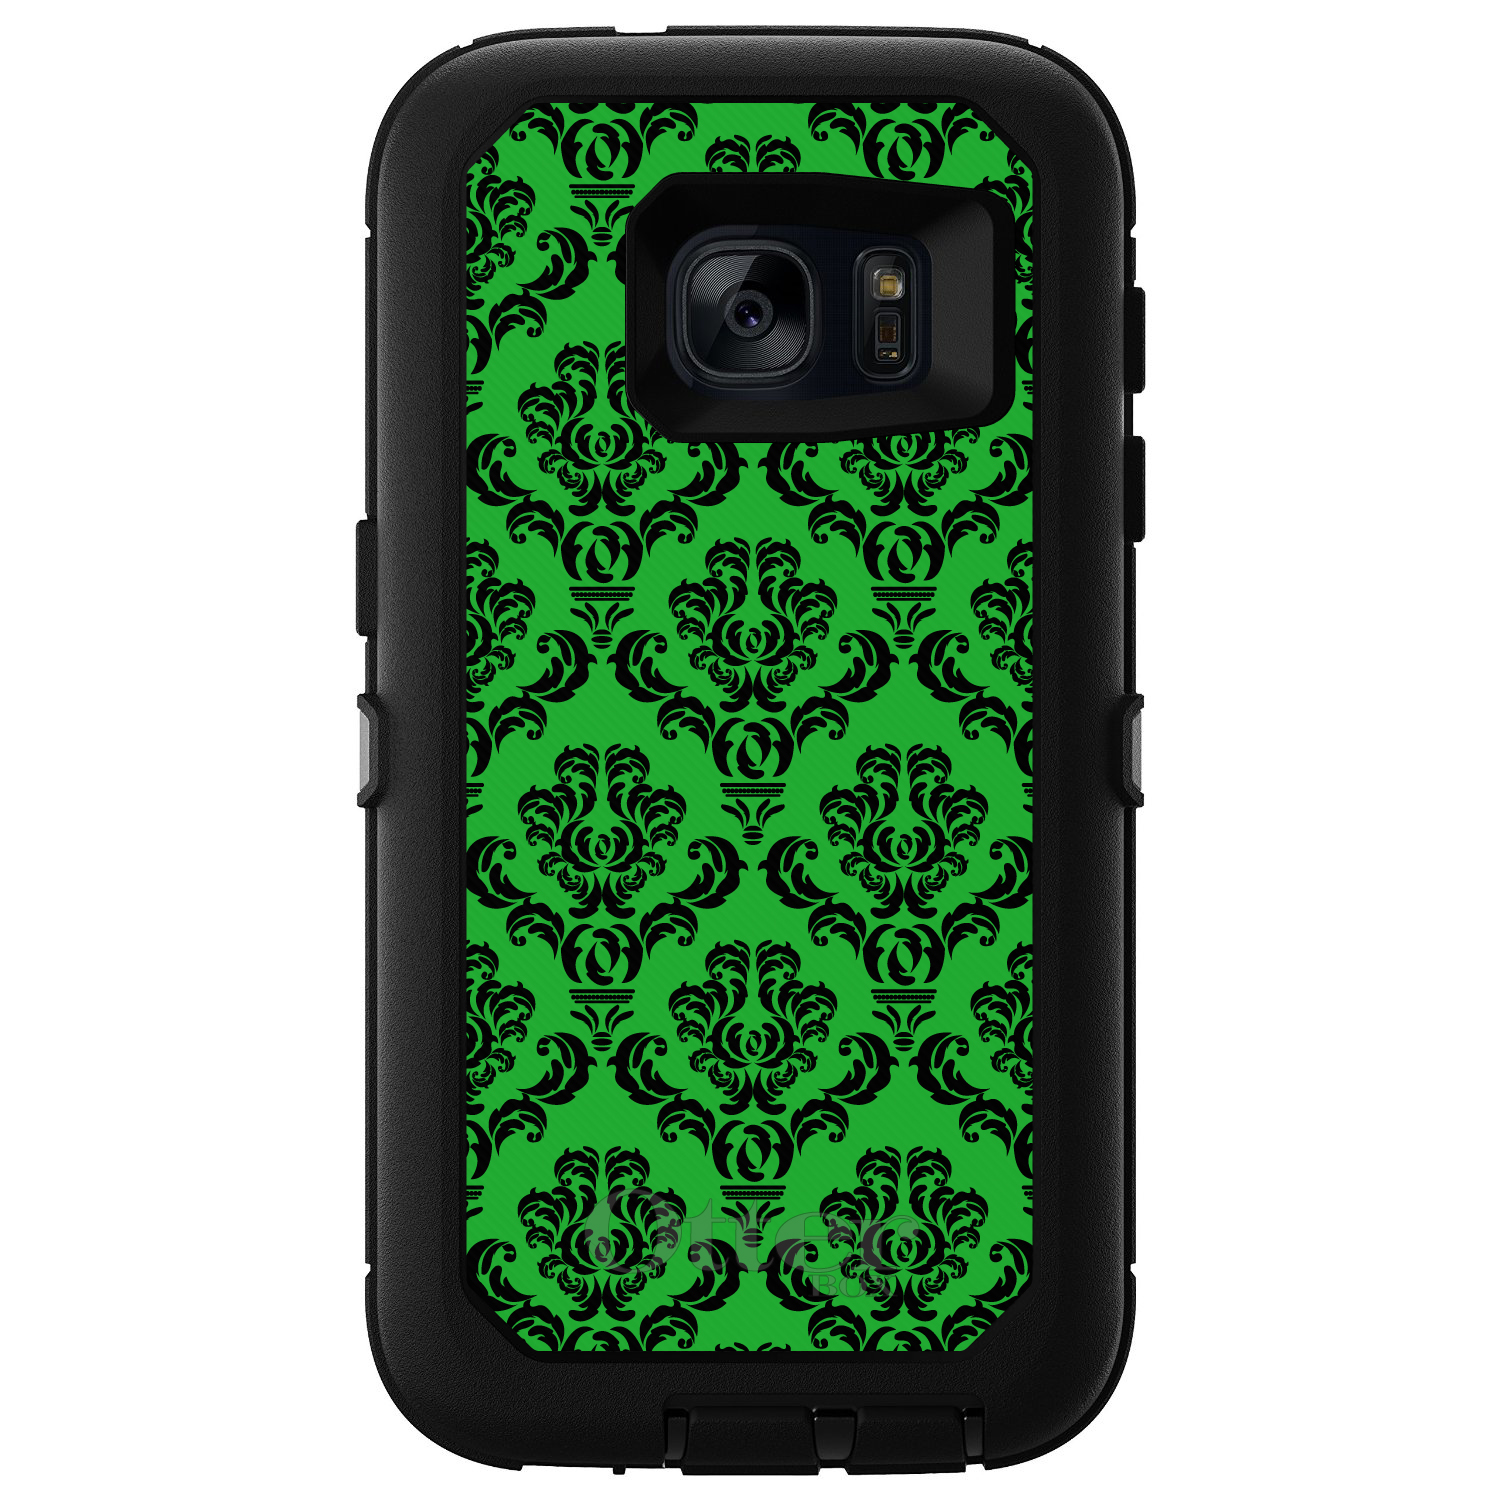 DistinctInk™ Custom Black OtterBox Defender Series Case for Samsung Galaxy S7 - Green Black Damask Pattern